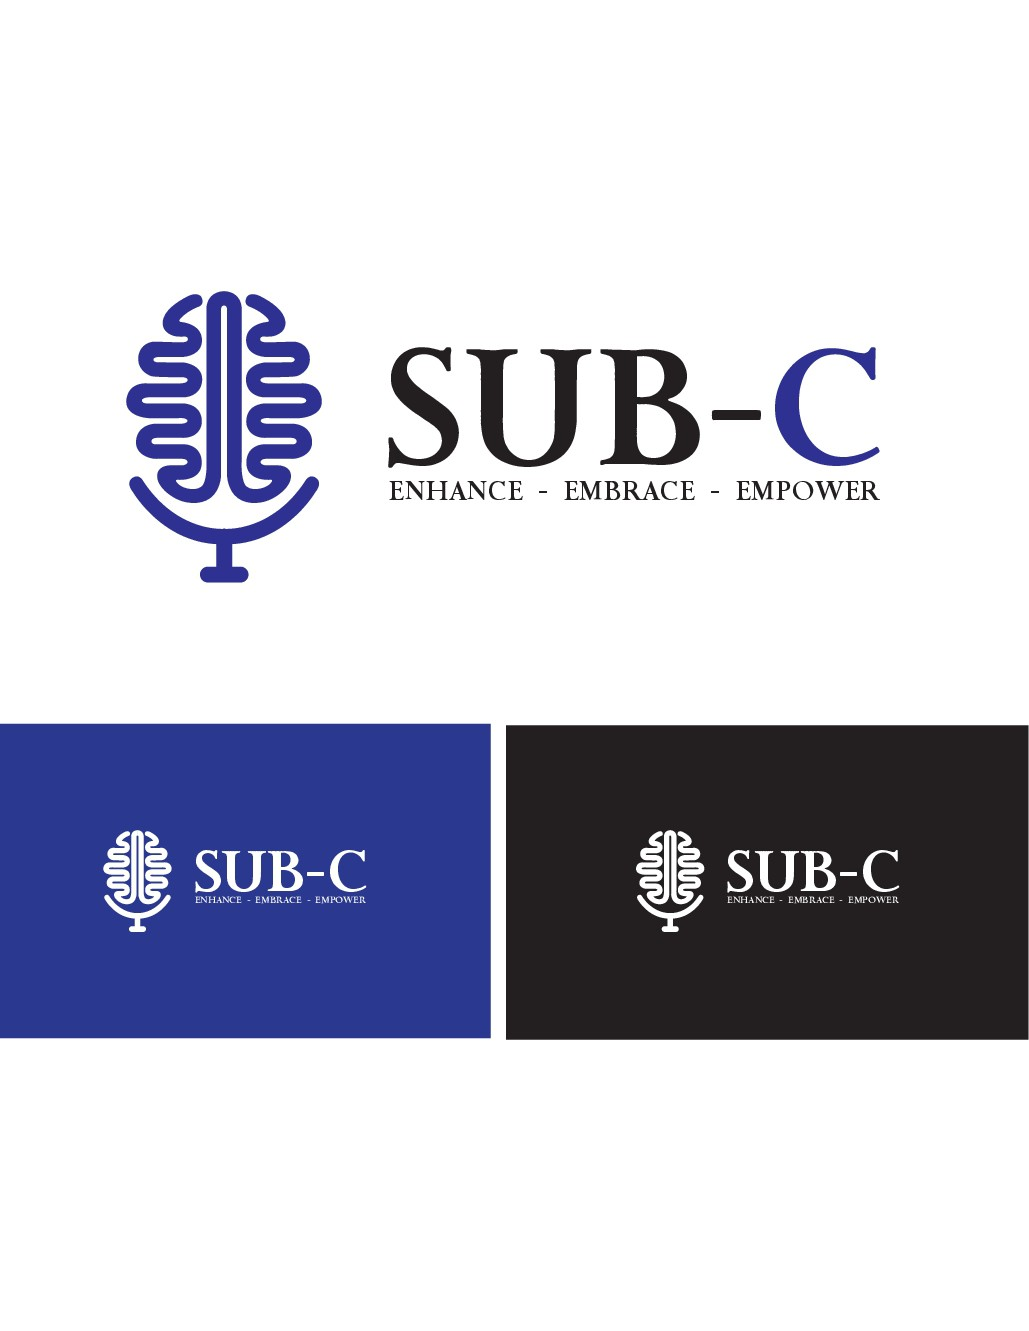 POWER logo needed for a podcast about the subconscious mind